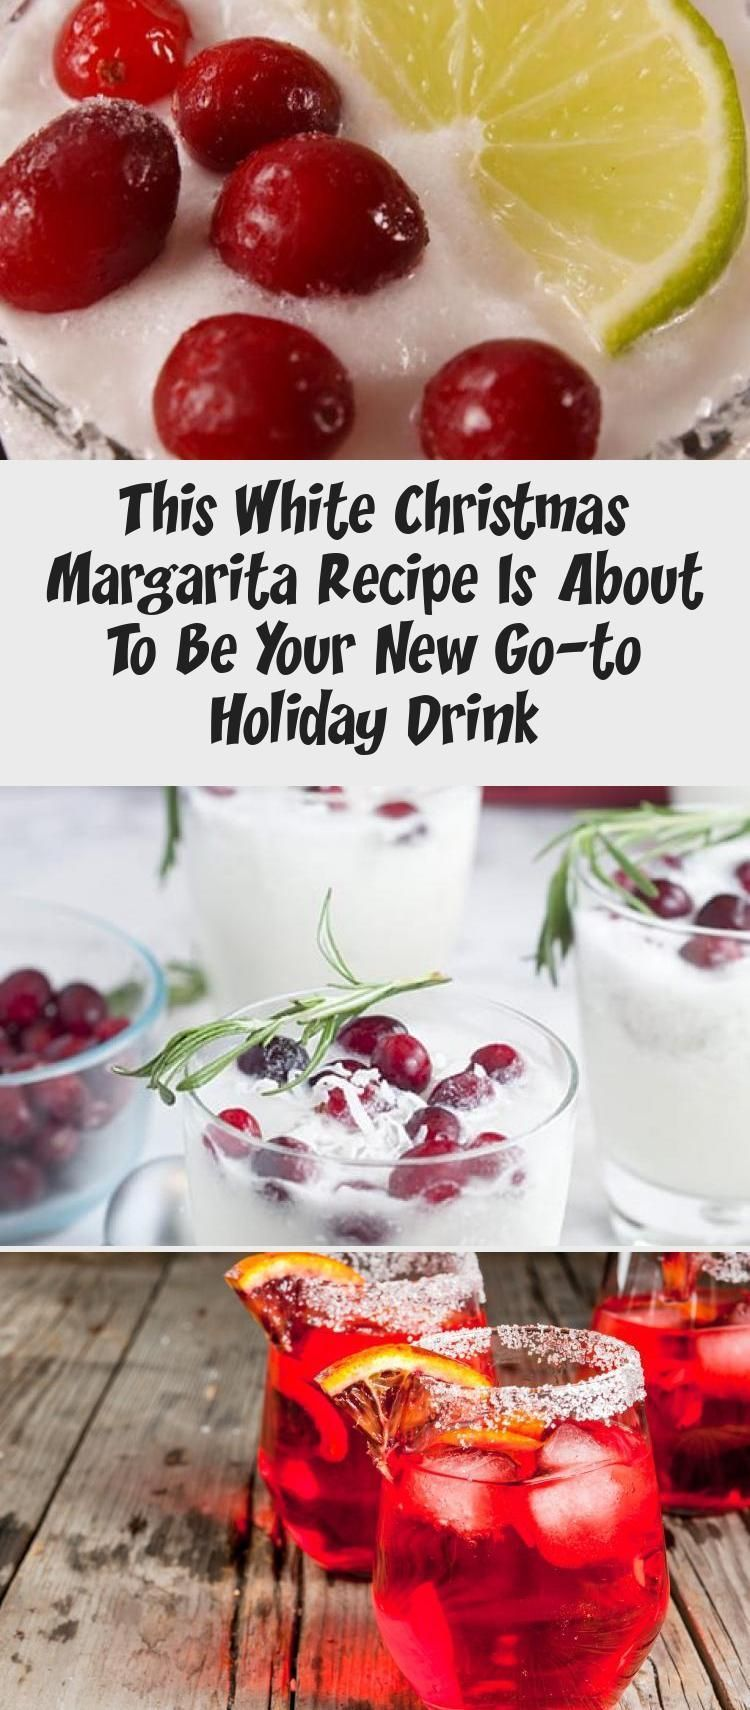 This White Christmas Margarita Recipe Is About To Be Your New Go-to Holiday Drink #christmasmargarita This White Christmas Margarita Recipe Is About To Be Your New Go-To Holiday Drink #whitedrinksStarbucks #whitedrinksPhotography #whitedrinksCocktails #whitedrinksAesthetic #Skinwhitedrinks #christmasmargarita This White Christmas Margarita Recipe Is About To Be Your New Go-to Holiday Drink #christmasmargarita This White Christmas Margarita Recipe Is About To Be Your New Go-To Holiday Drink #whit #christmasmargarita